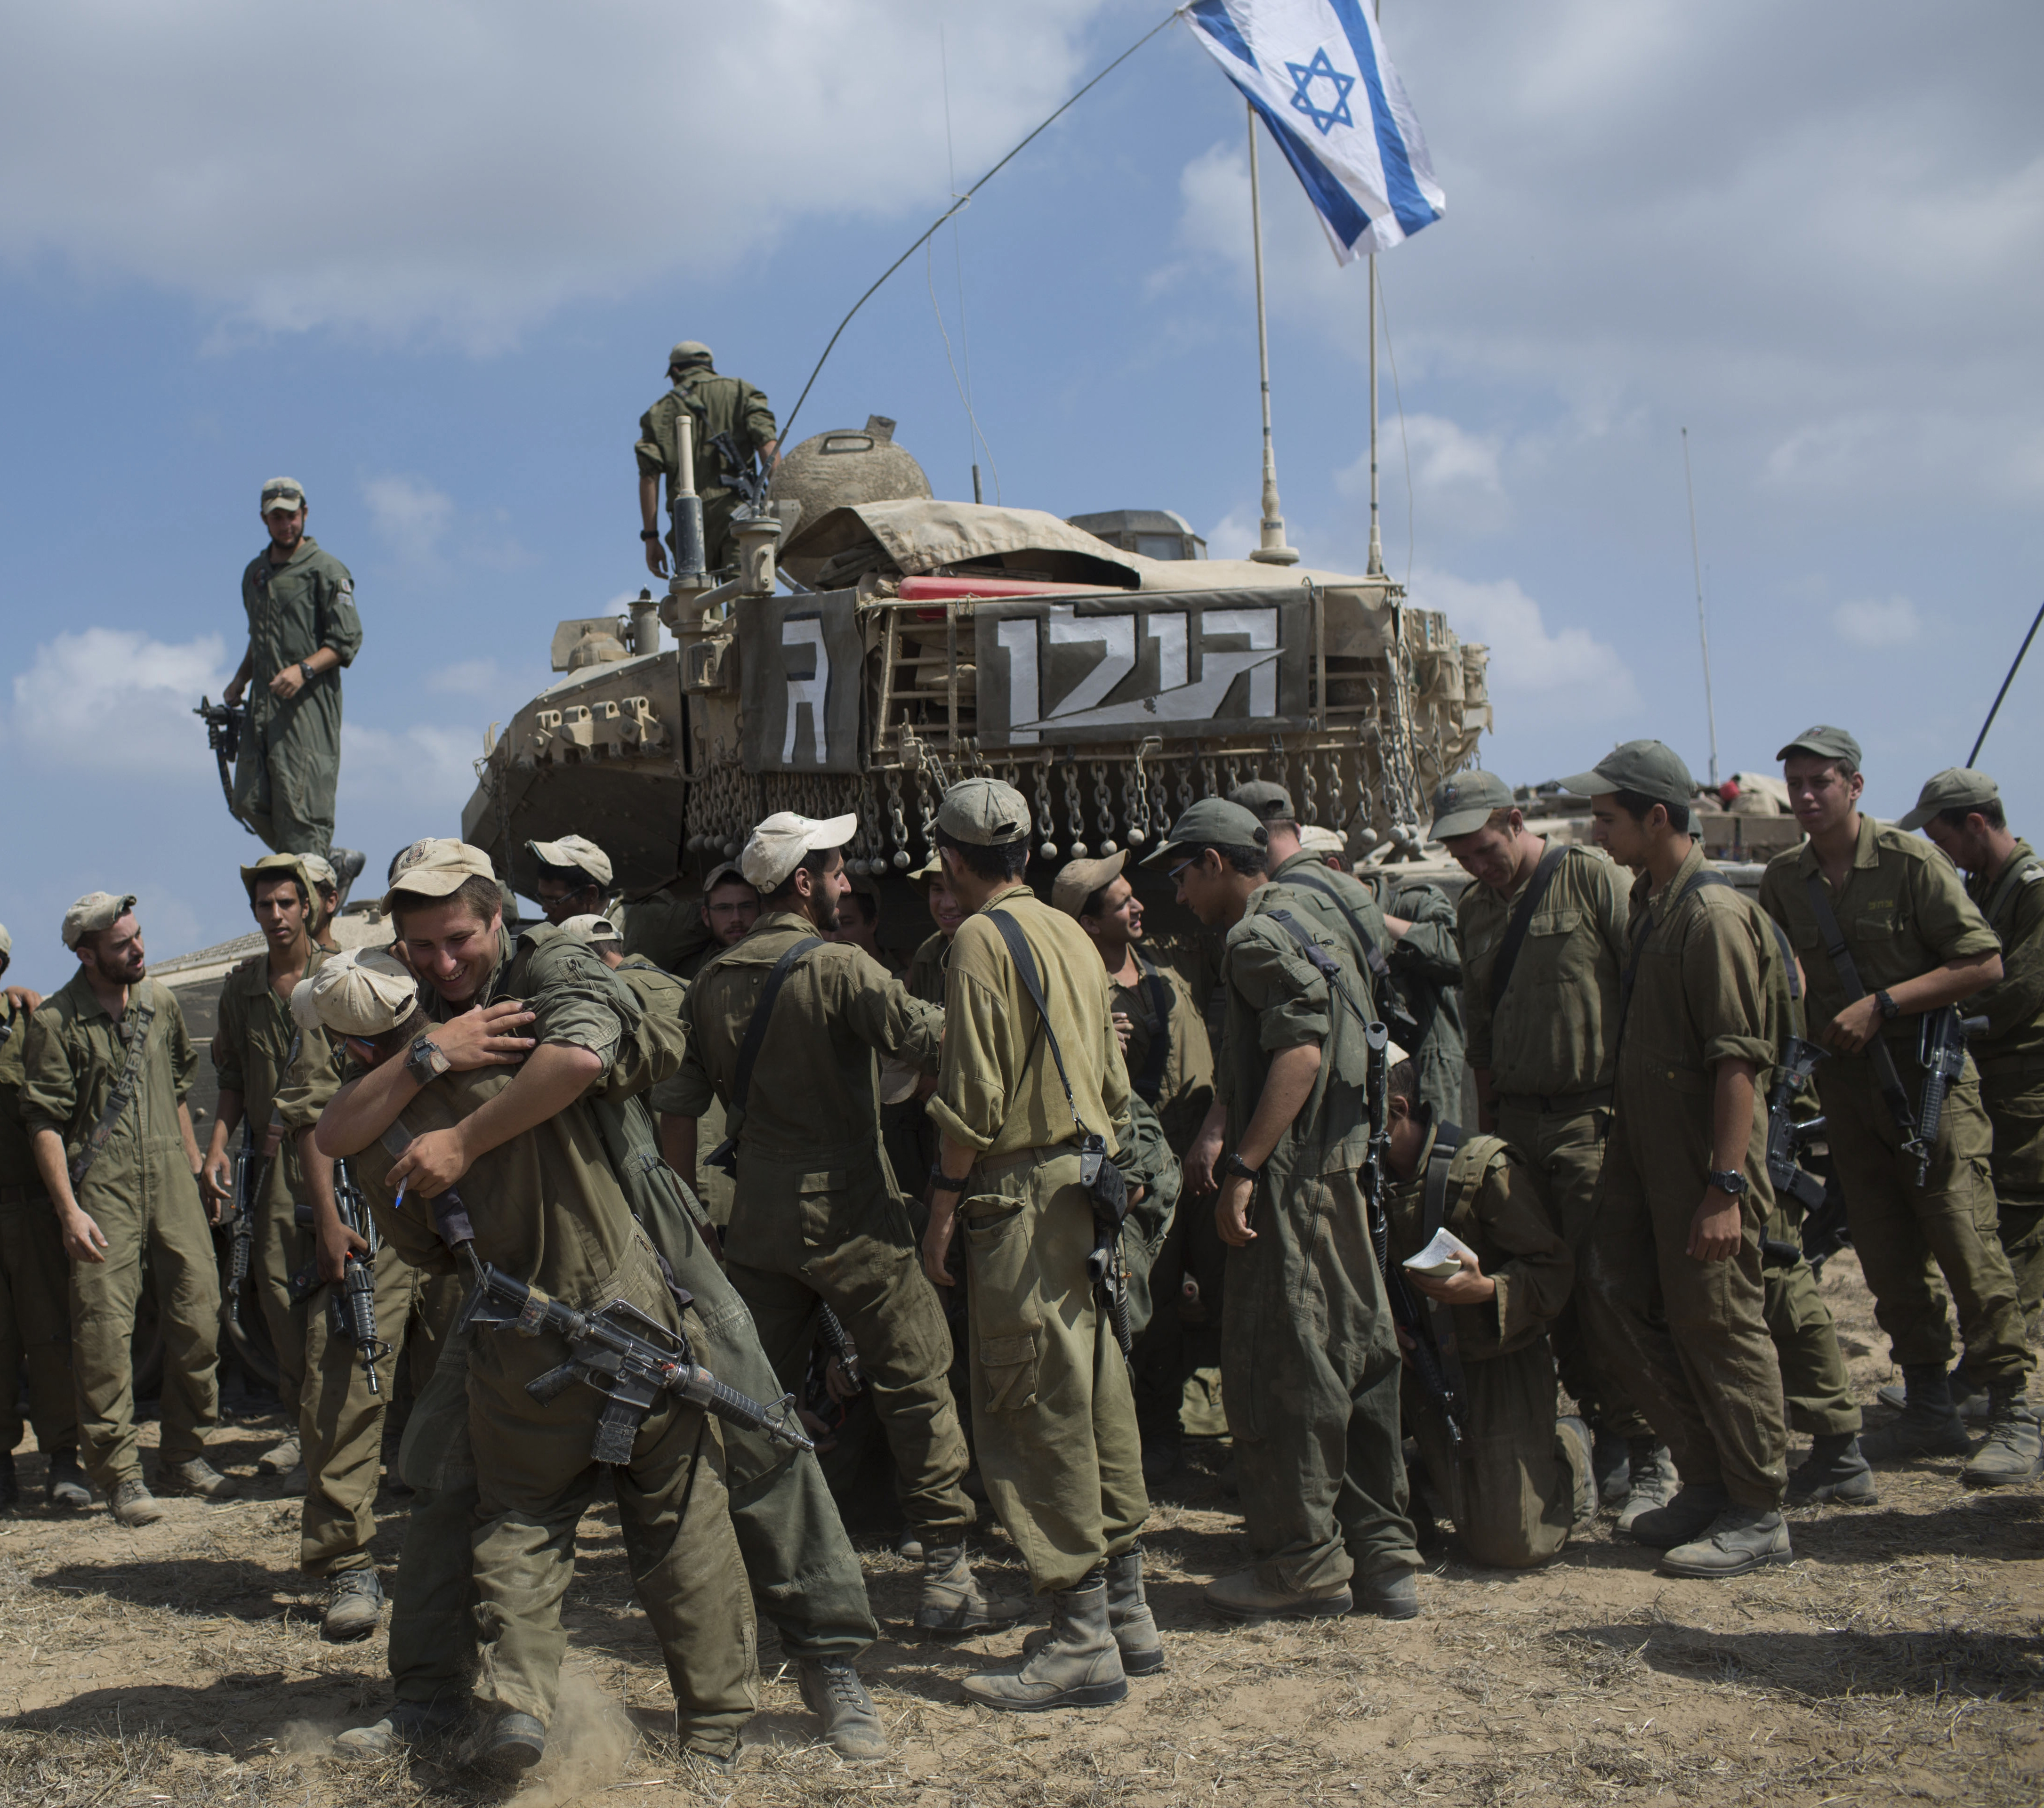 Many American Jews have joined Israeli soldiers in the fight against Hamas in Gaza.